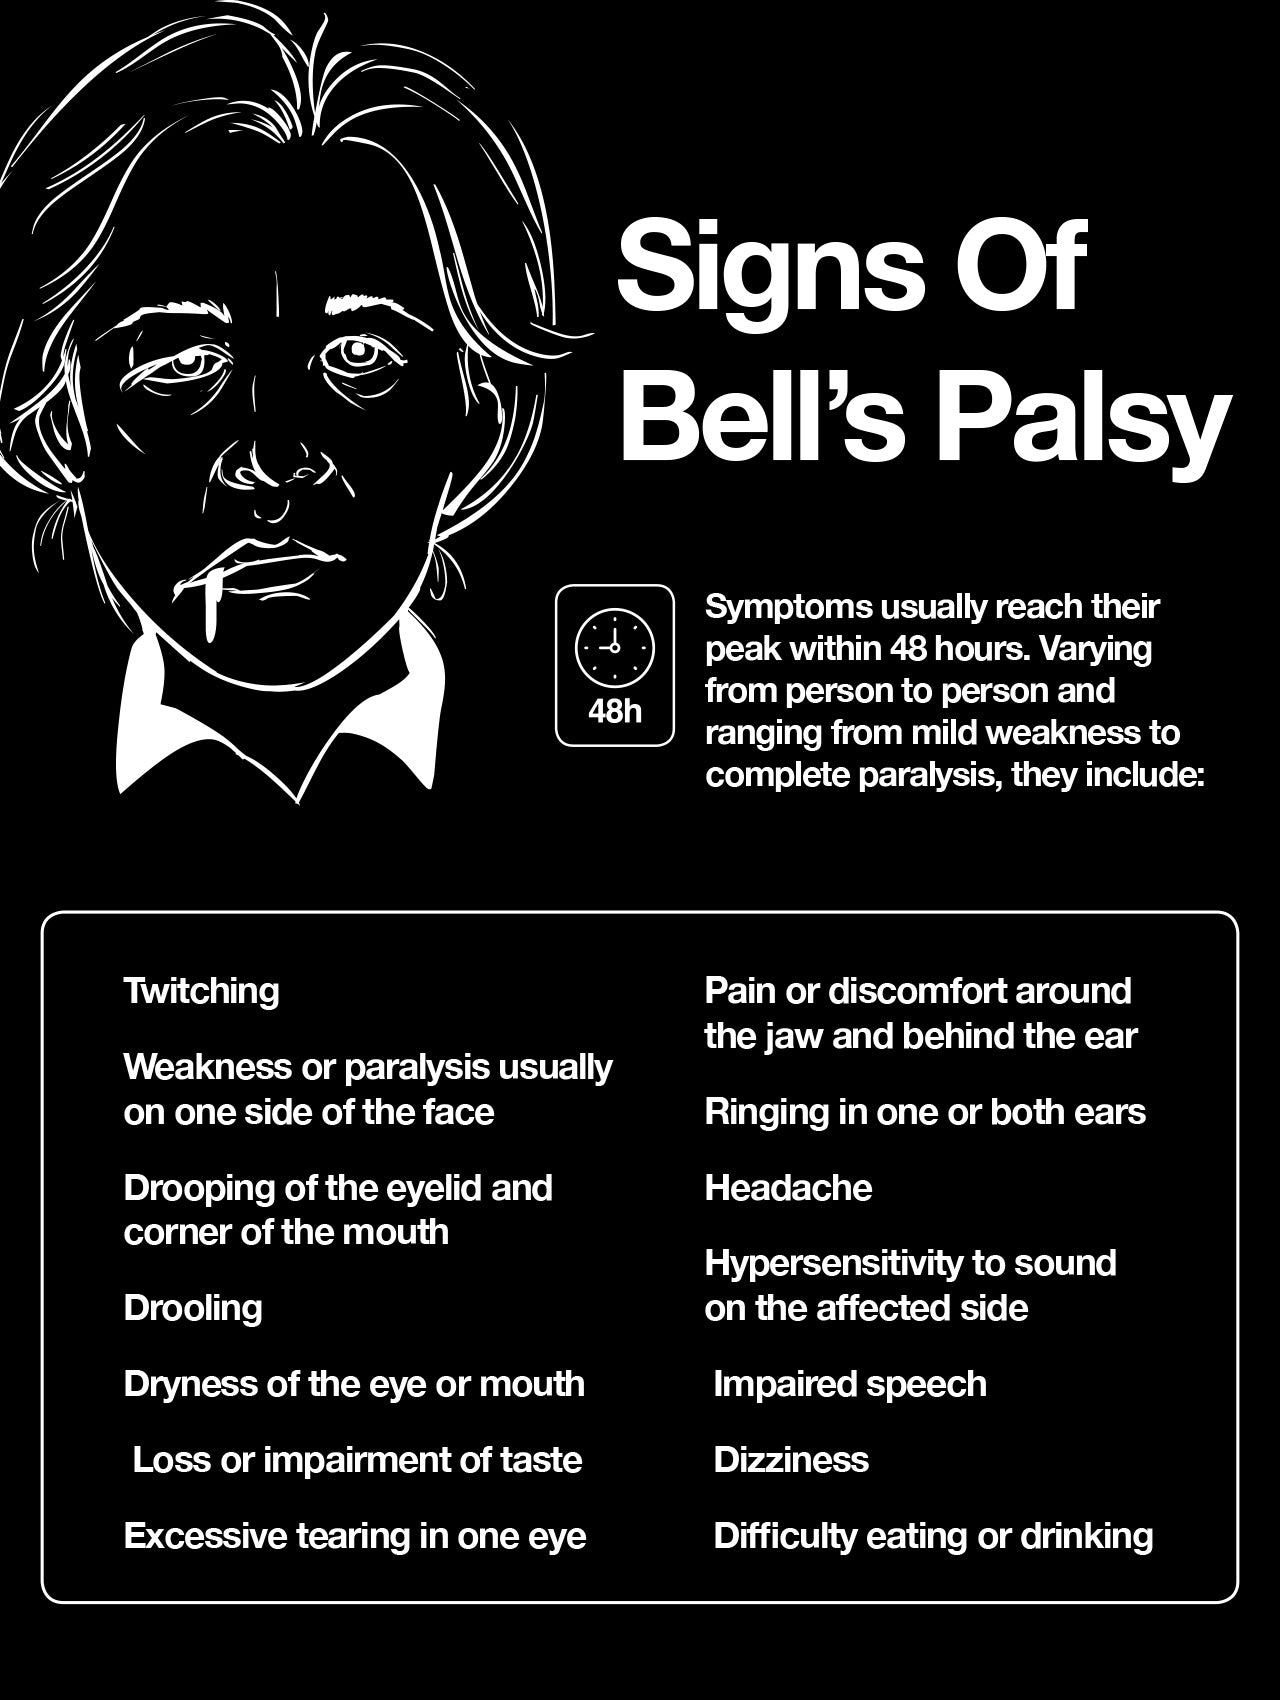 Signs of Bell's palsy